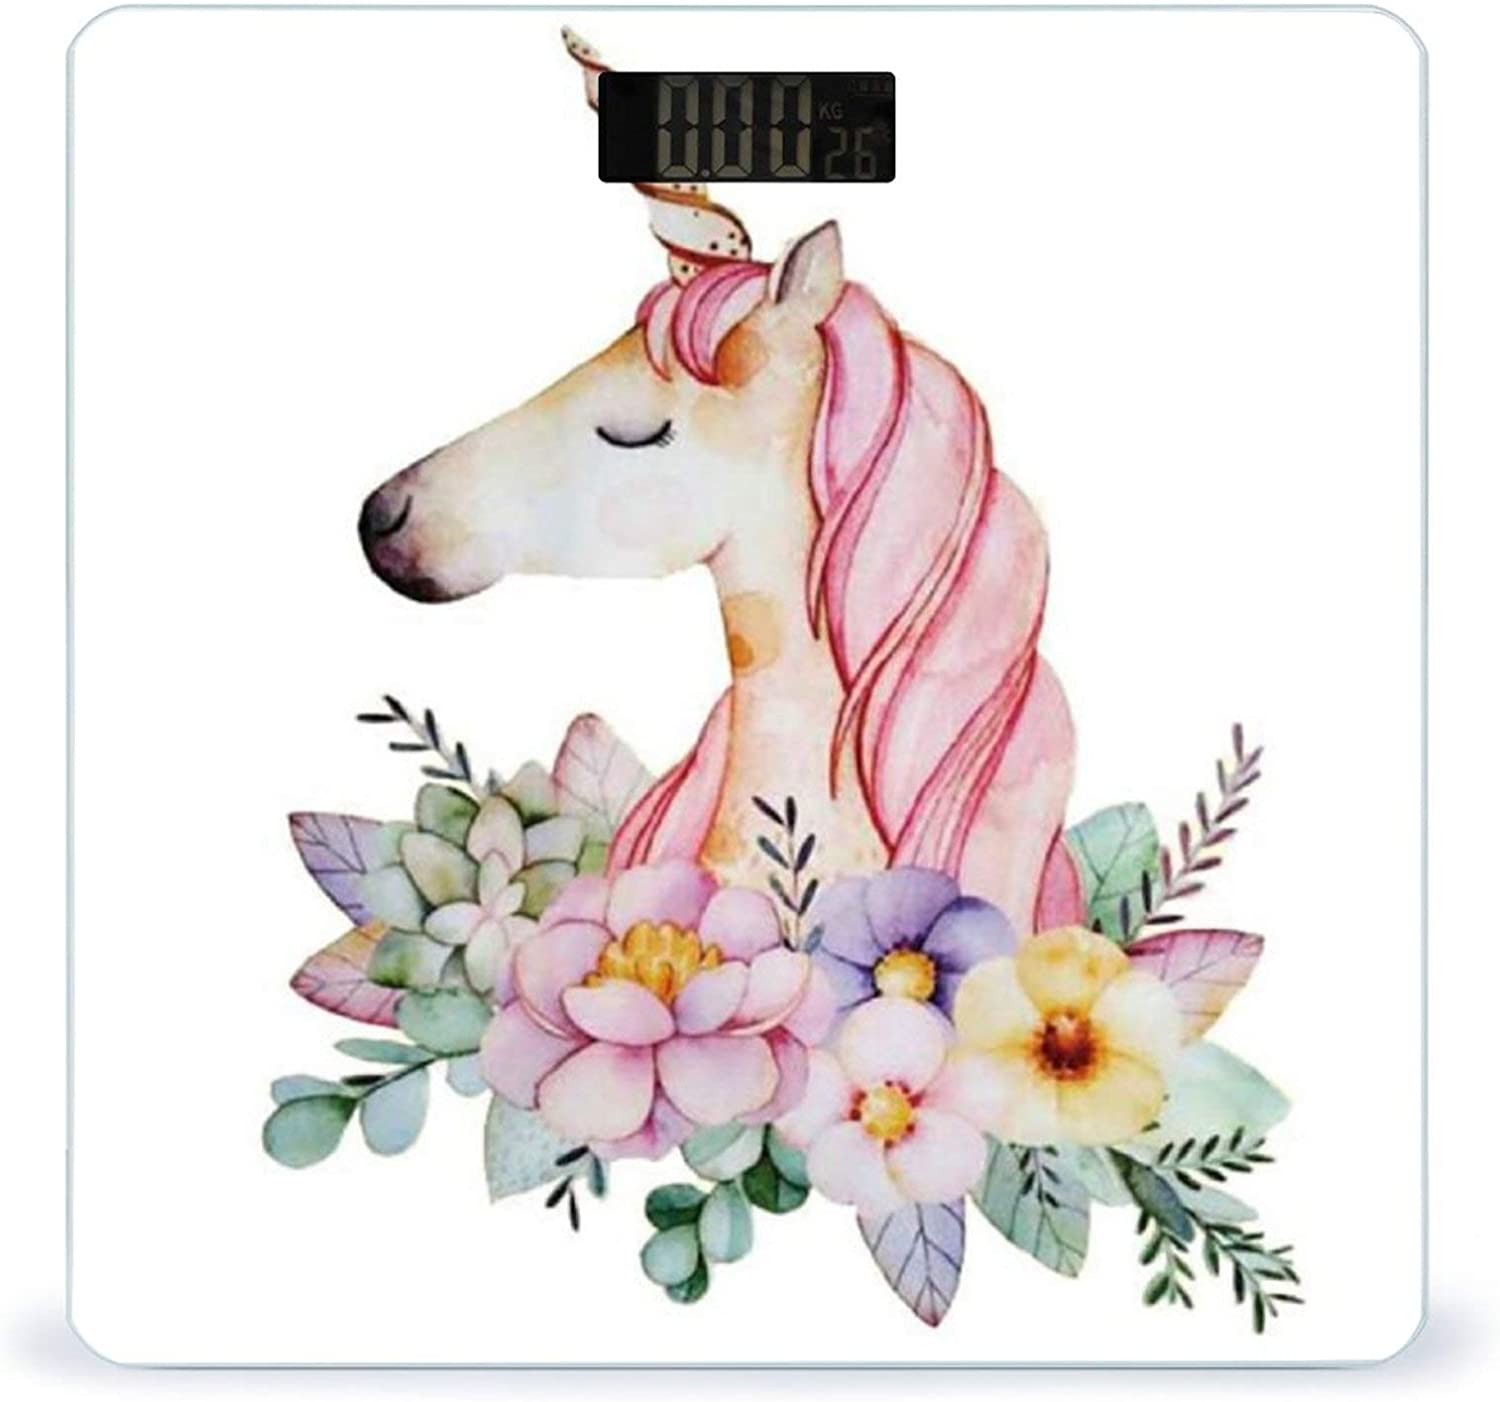 CHUFZSD Tulsa Mall Cute Flower and Unicorn Highly Luxury Accurate Fitness Smart Sc